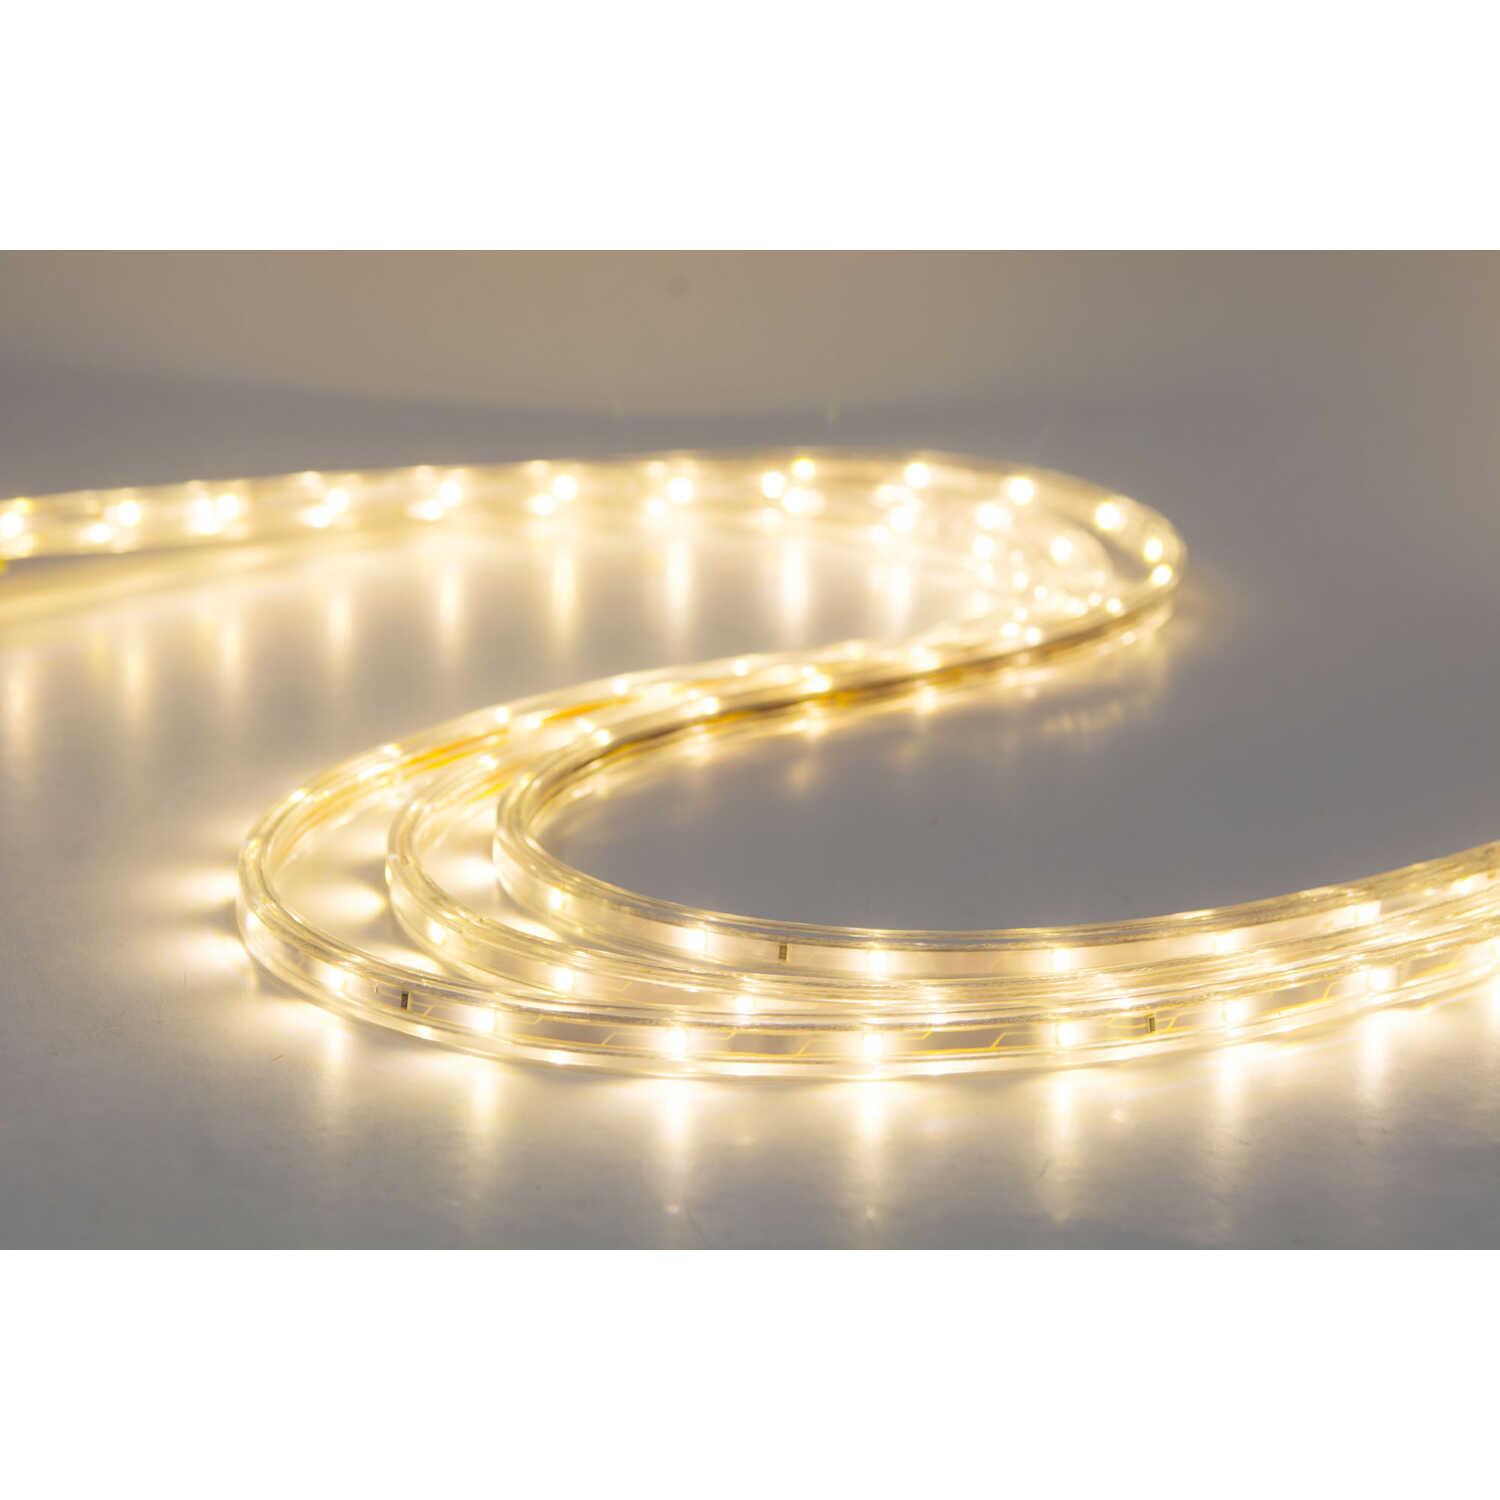 Living Accents  Summer  LED  Flex Tape  Lights  Warm White  16.4 ft. 160 lights